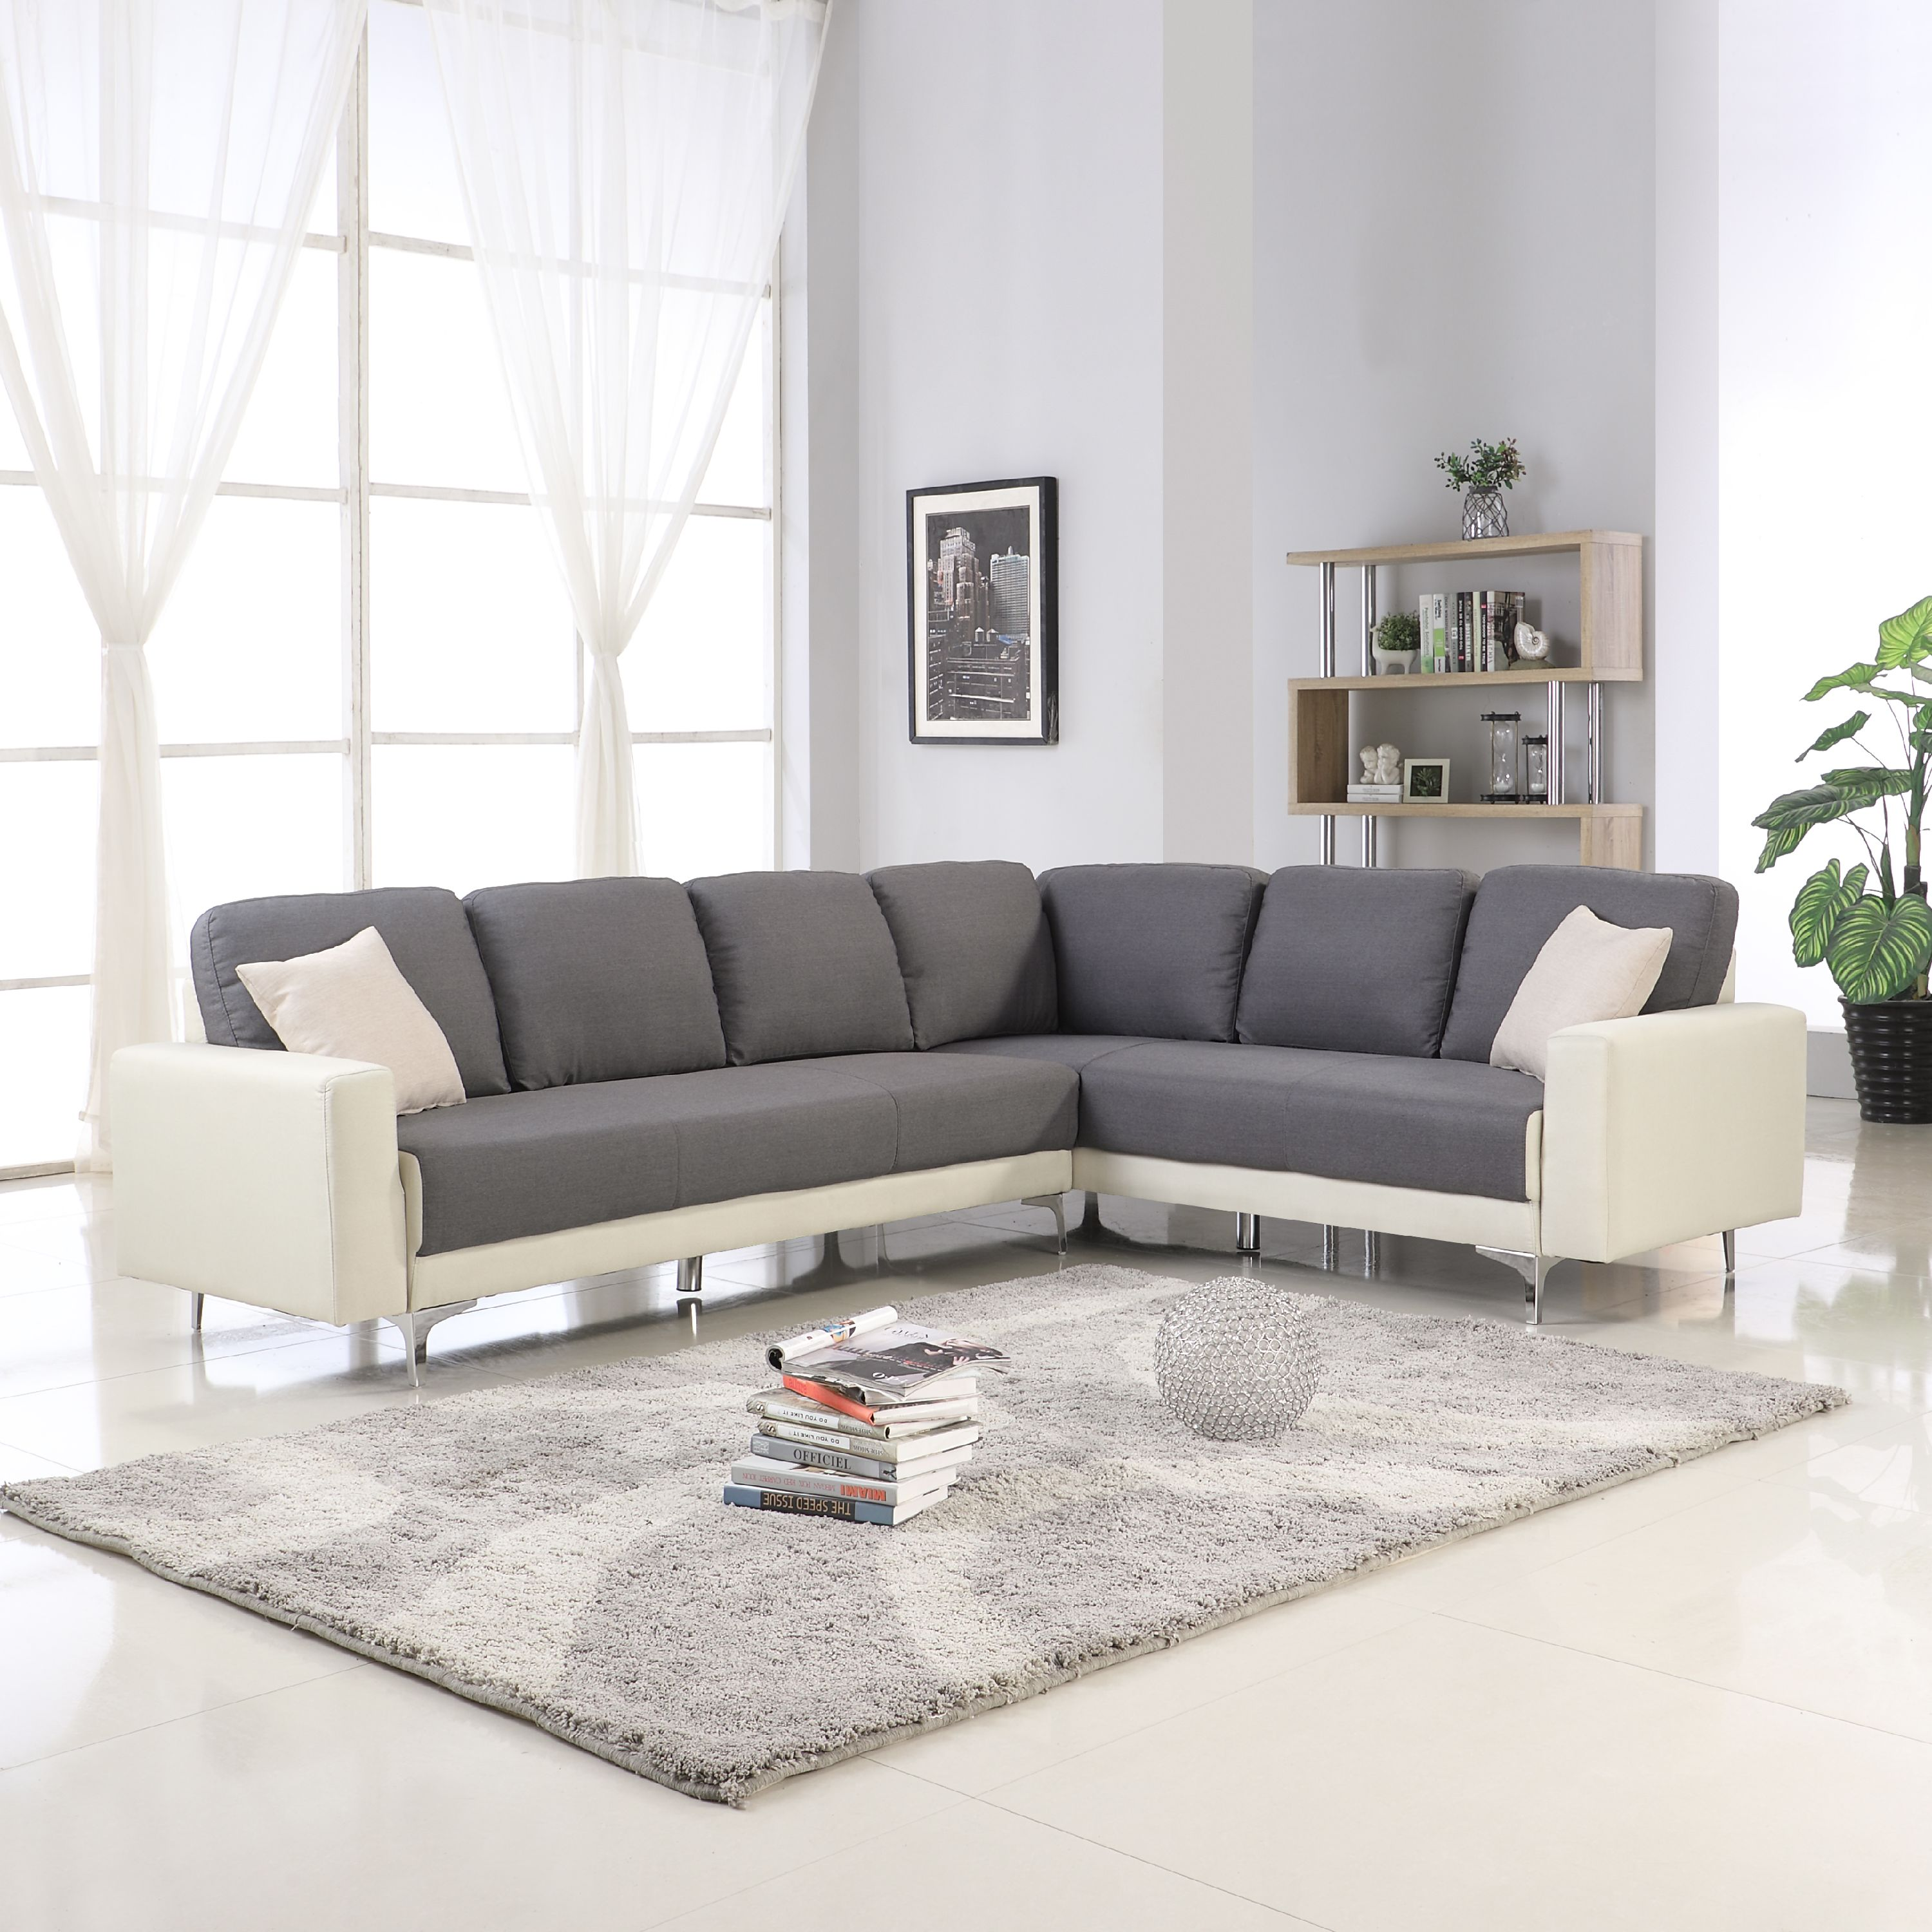 Modern Contemporary 2 Tone Sectional Sofa, Dark Gray/Beige